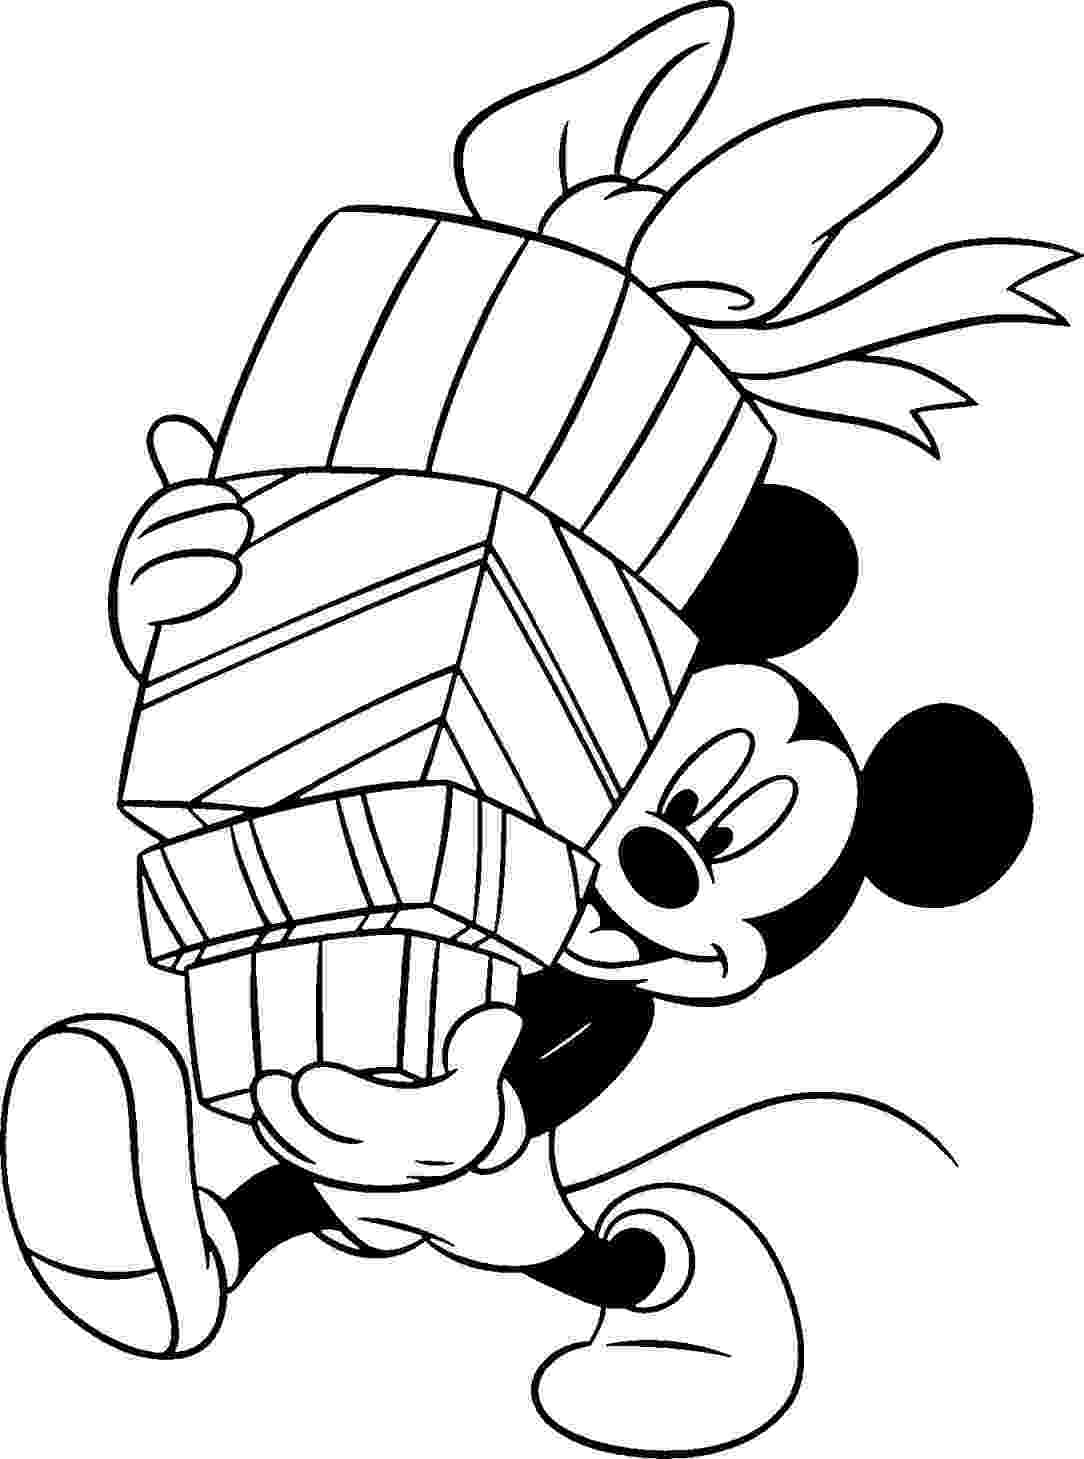 coloring pages disney cute disney coloring pages to download and print for free pages coloring disney